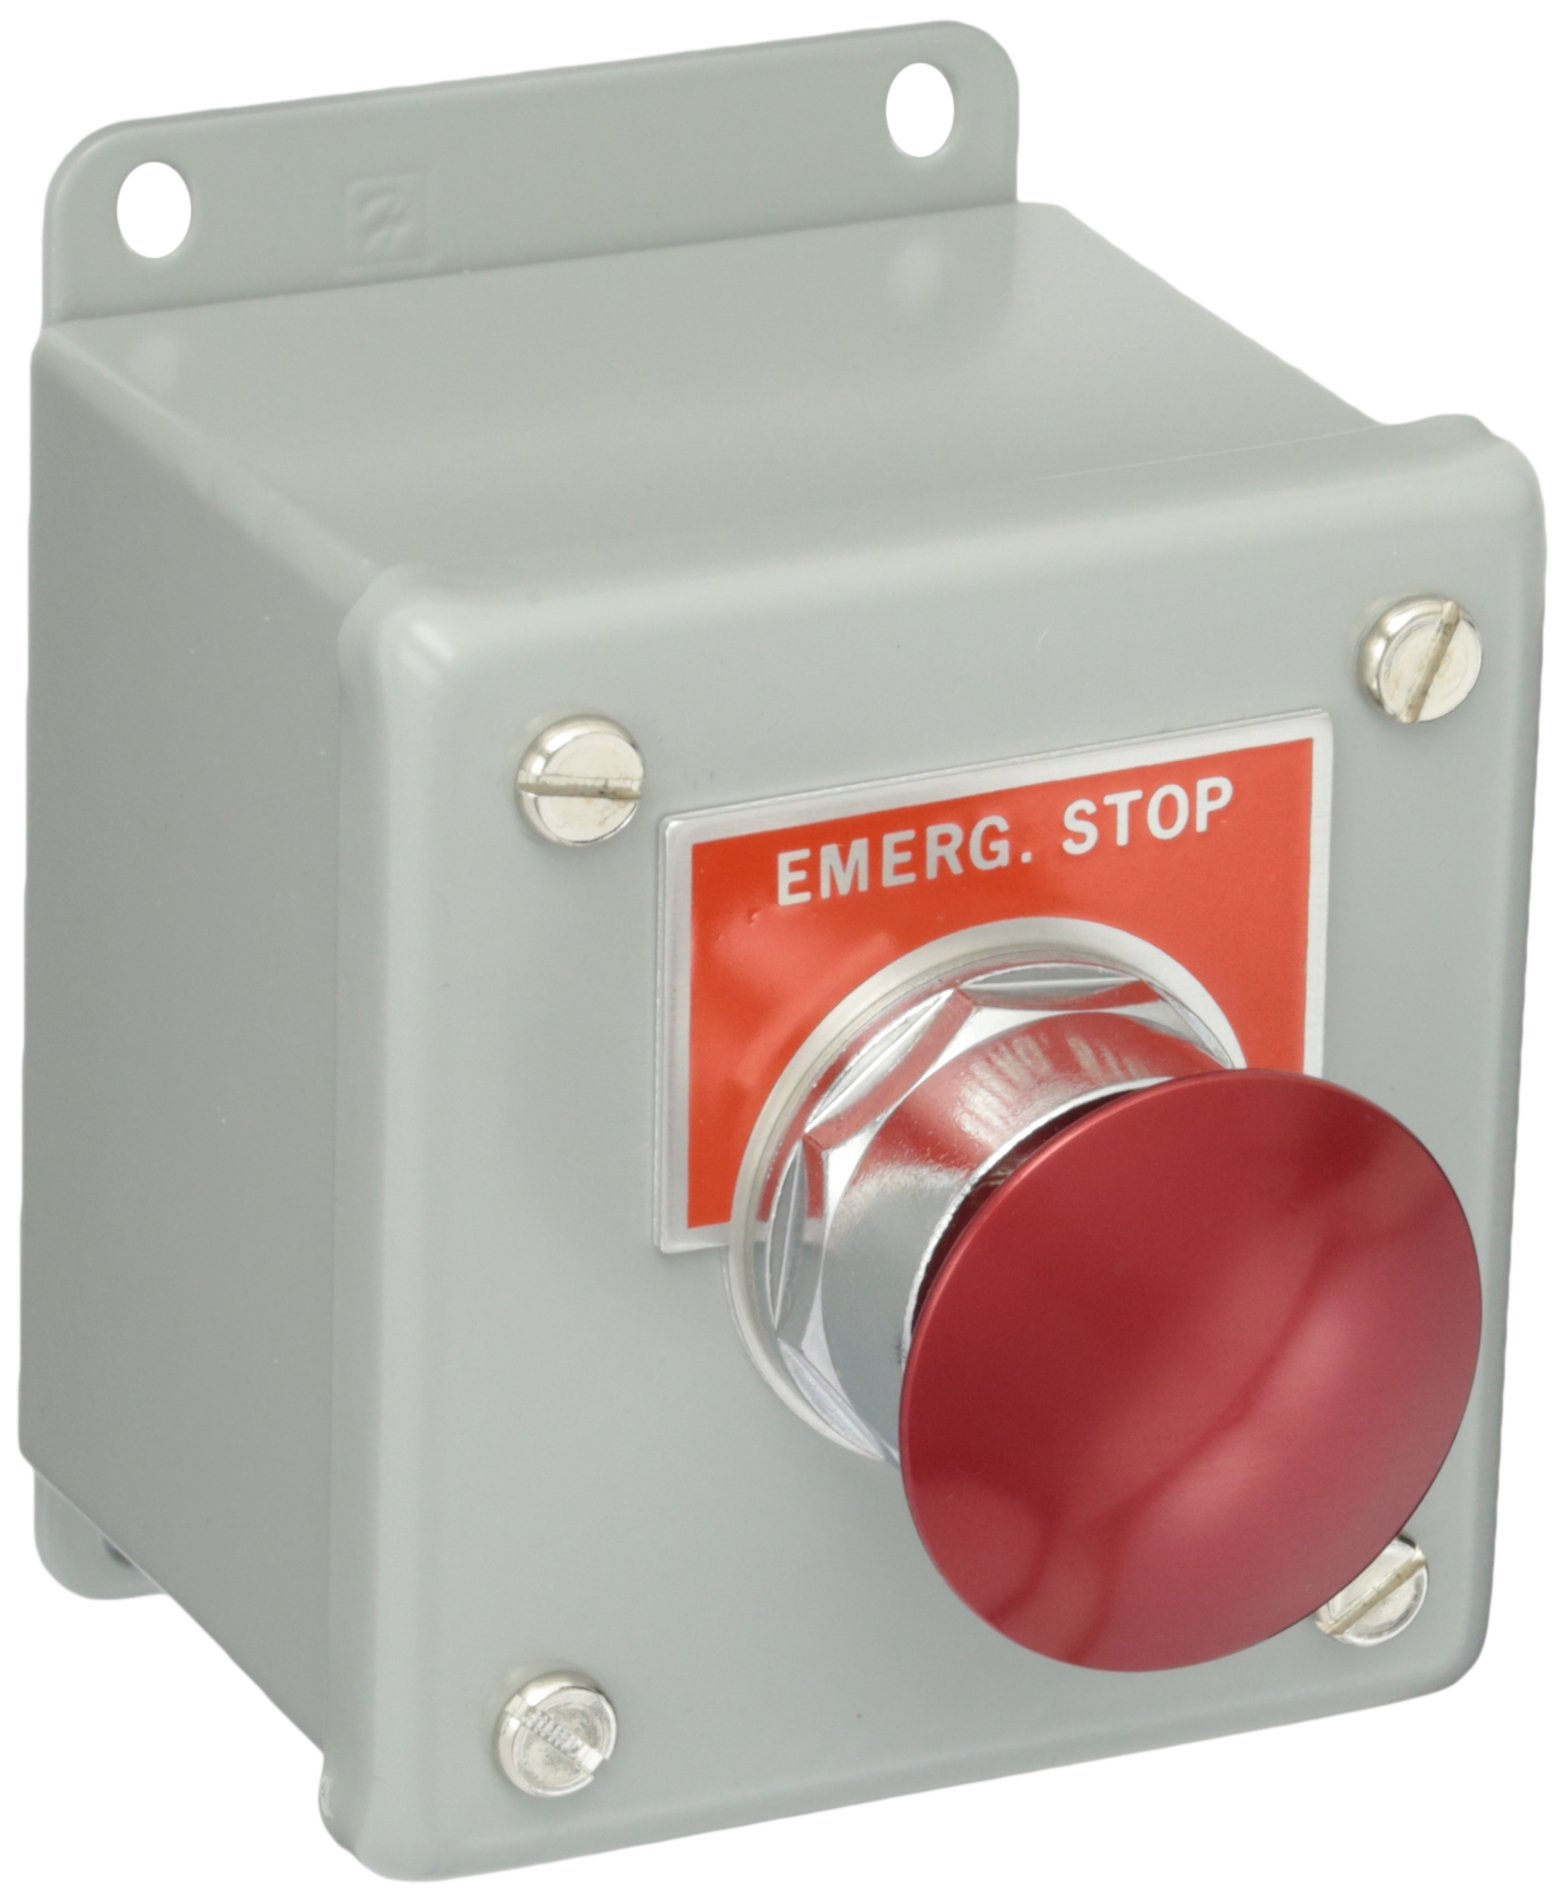 Siemens 52C117A Heavy Duty Pushbutton Control Station, Water and Oil Tight, 1 Command Point, Maintained Operation, Mushroom Head, Metal, Red, ''EMERGENCY STOP'' Labeled, NEMA 12 Protection, 1 NO + 1 NC Contact Types by SIEMENS